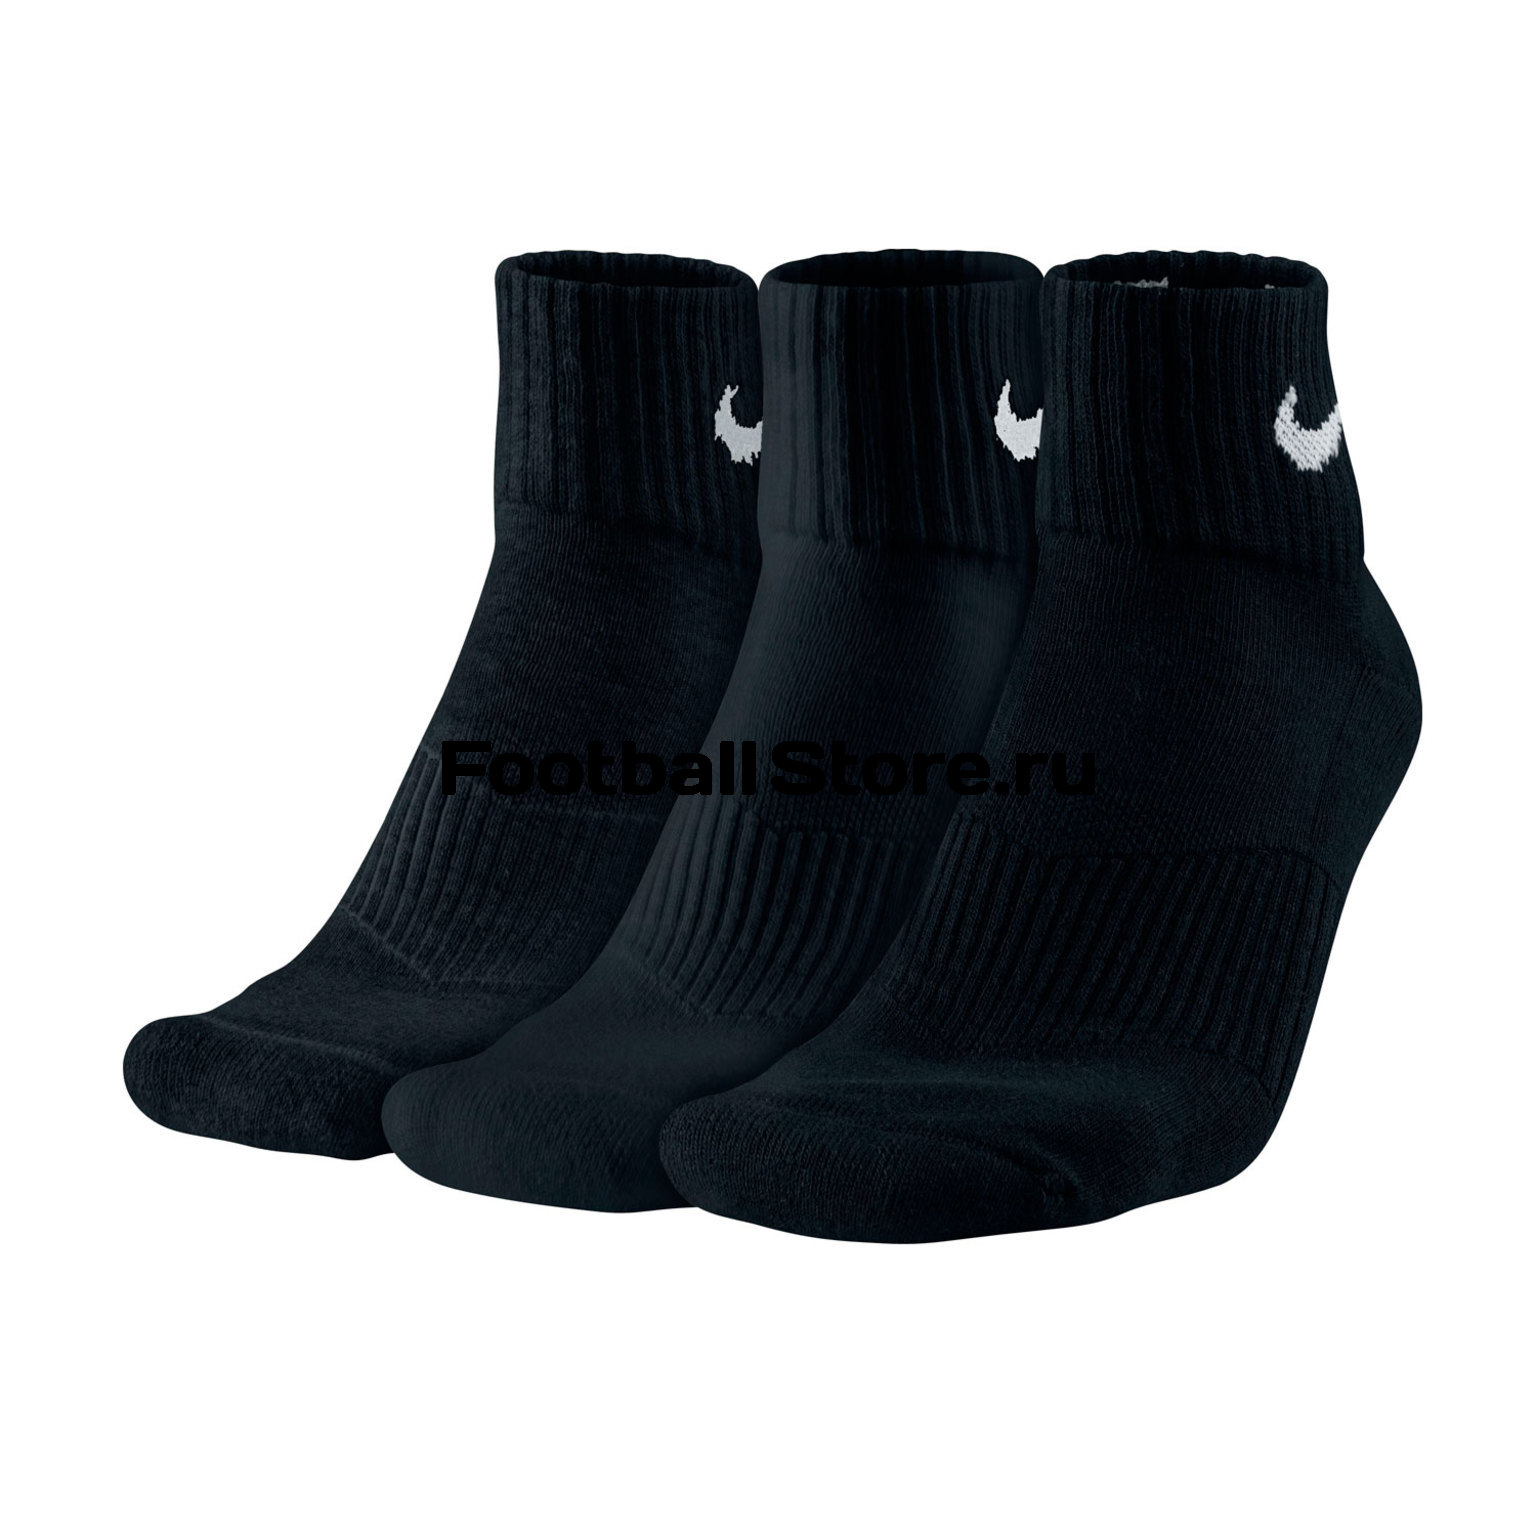 Комплект носков Nike 3PPK Cushion Quarter SX4703-001 комплект носков nike 3ppk lightweight quarter